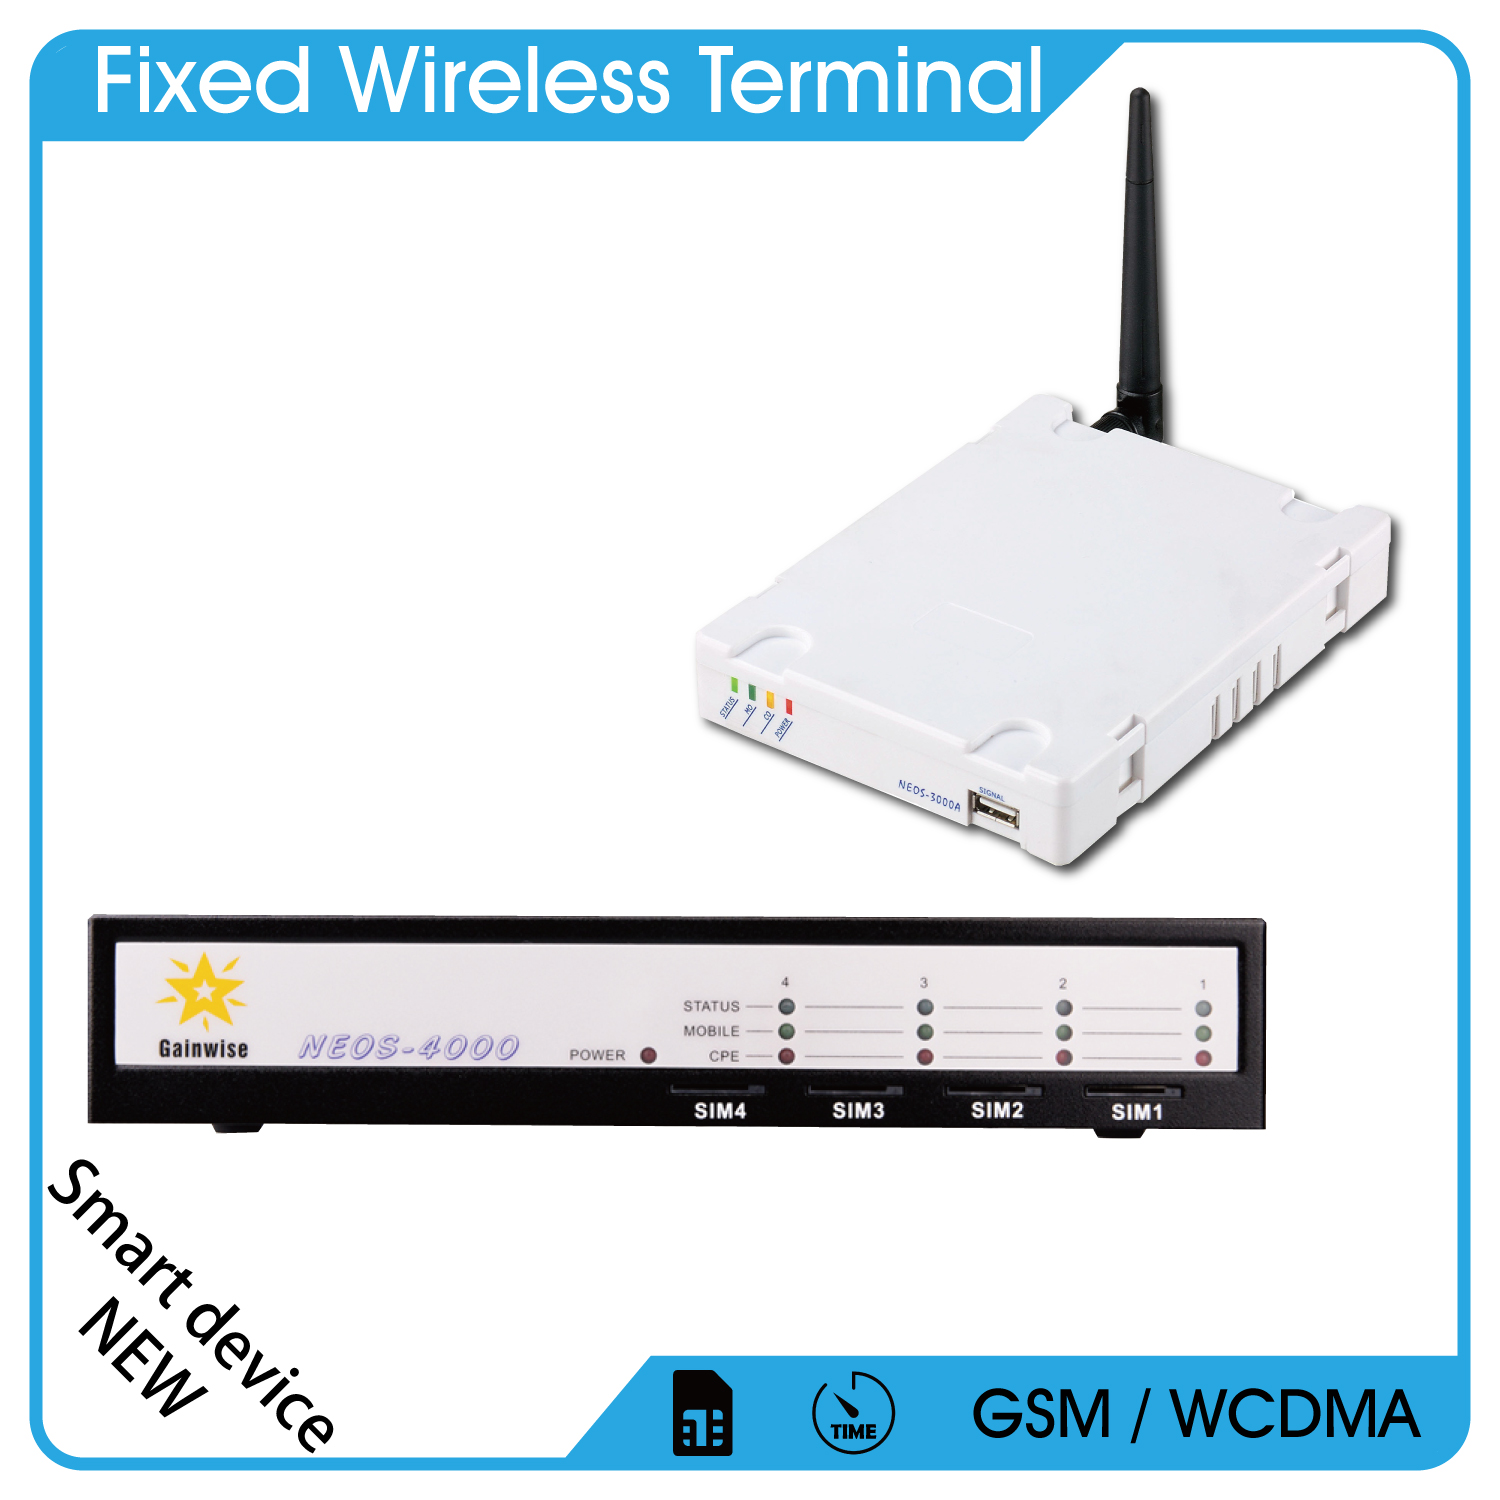 Fixed Wireless Terminal